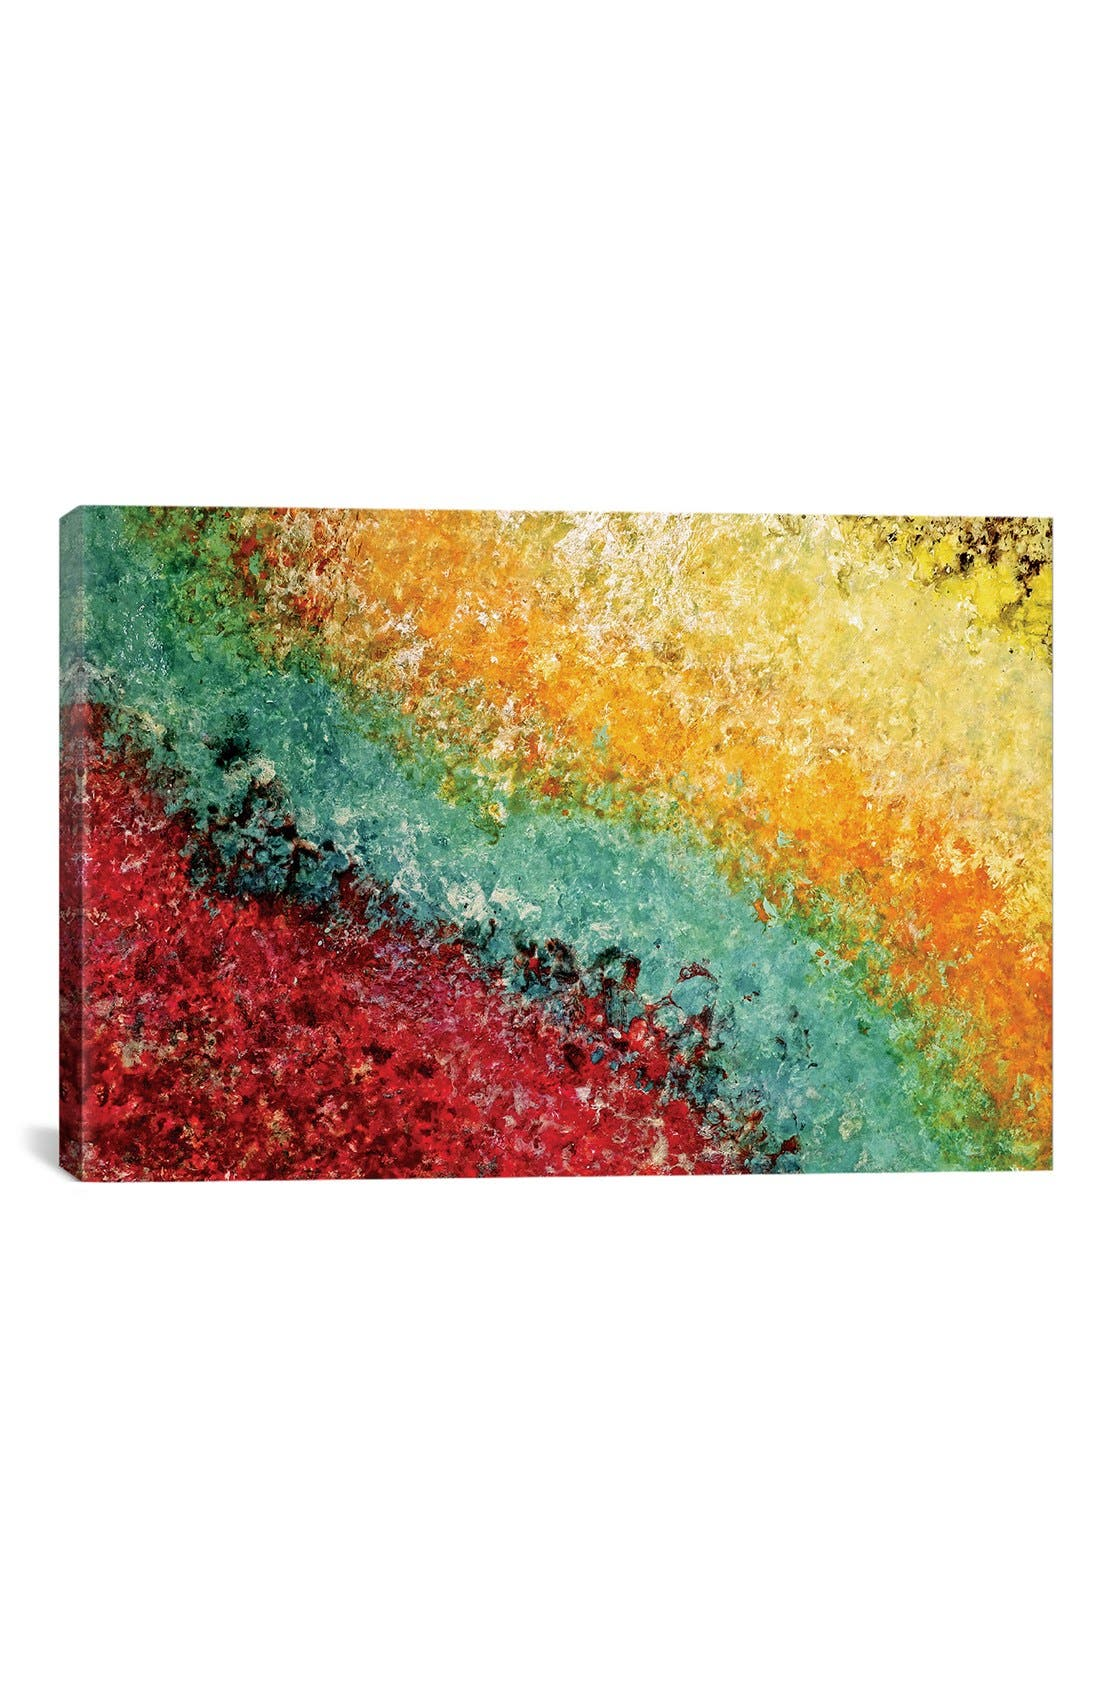 'Enchanted Lullaby' Giclée Print Canvas Art,                             Main thumbnail 1, color,                             Yellow